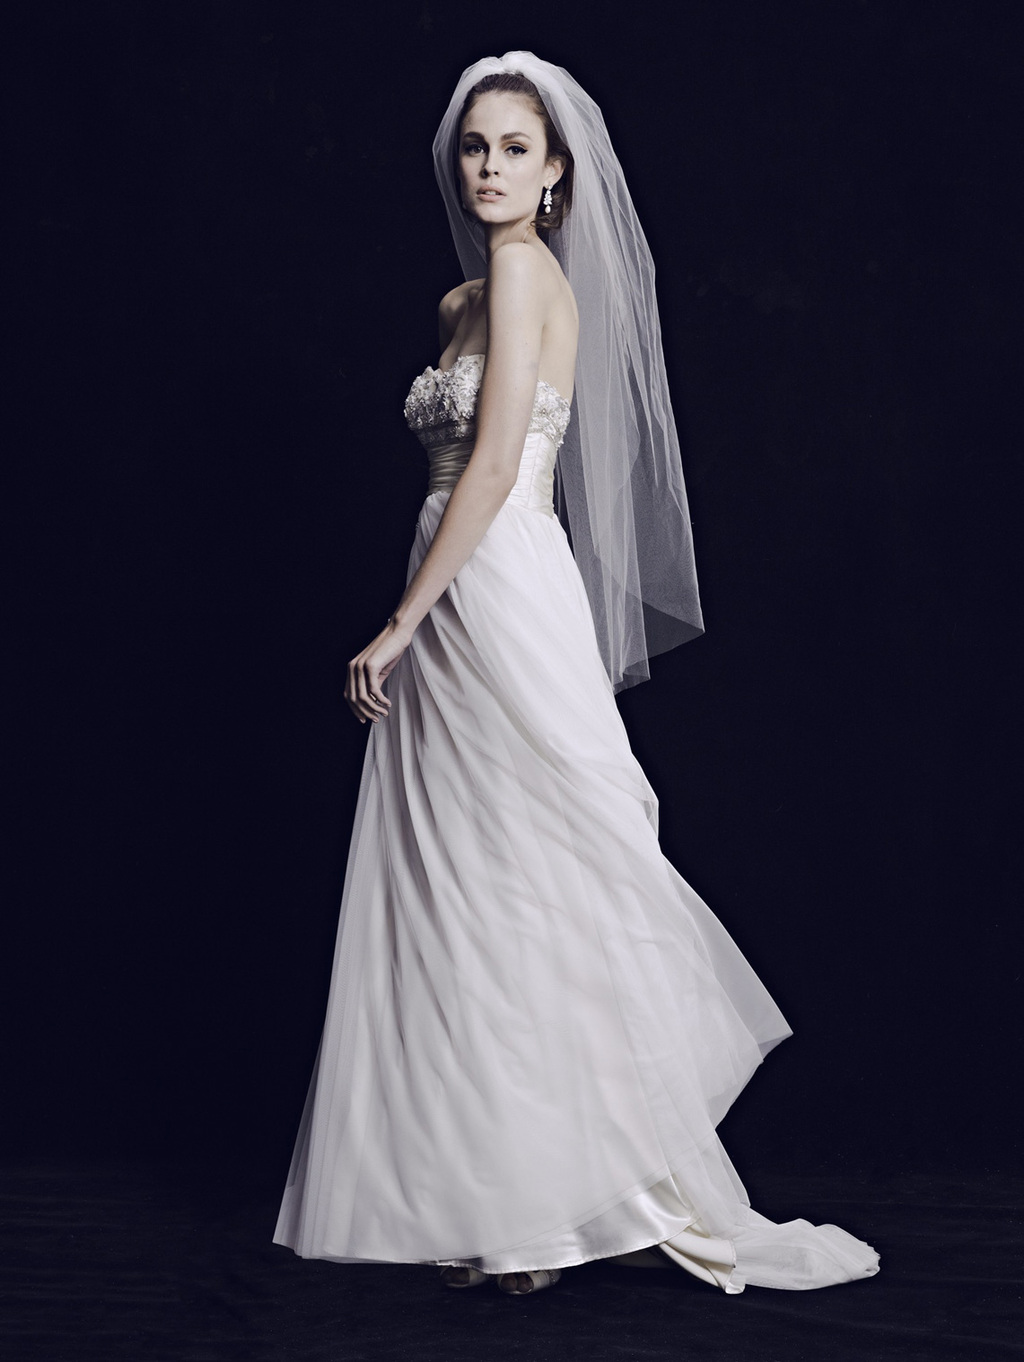 Mariana-hardwick-wedding-dress-2013-bridal-classic-7.full